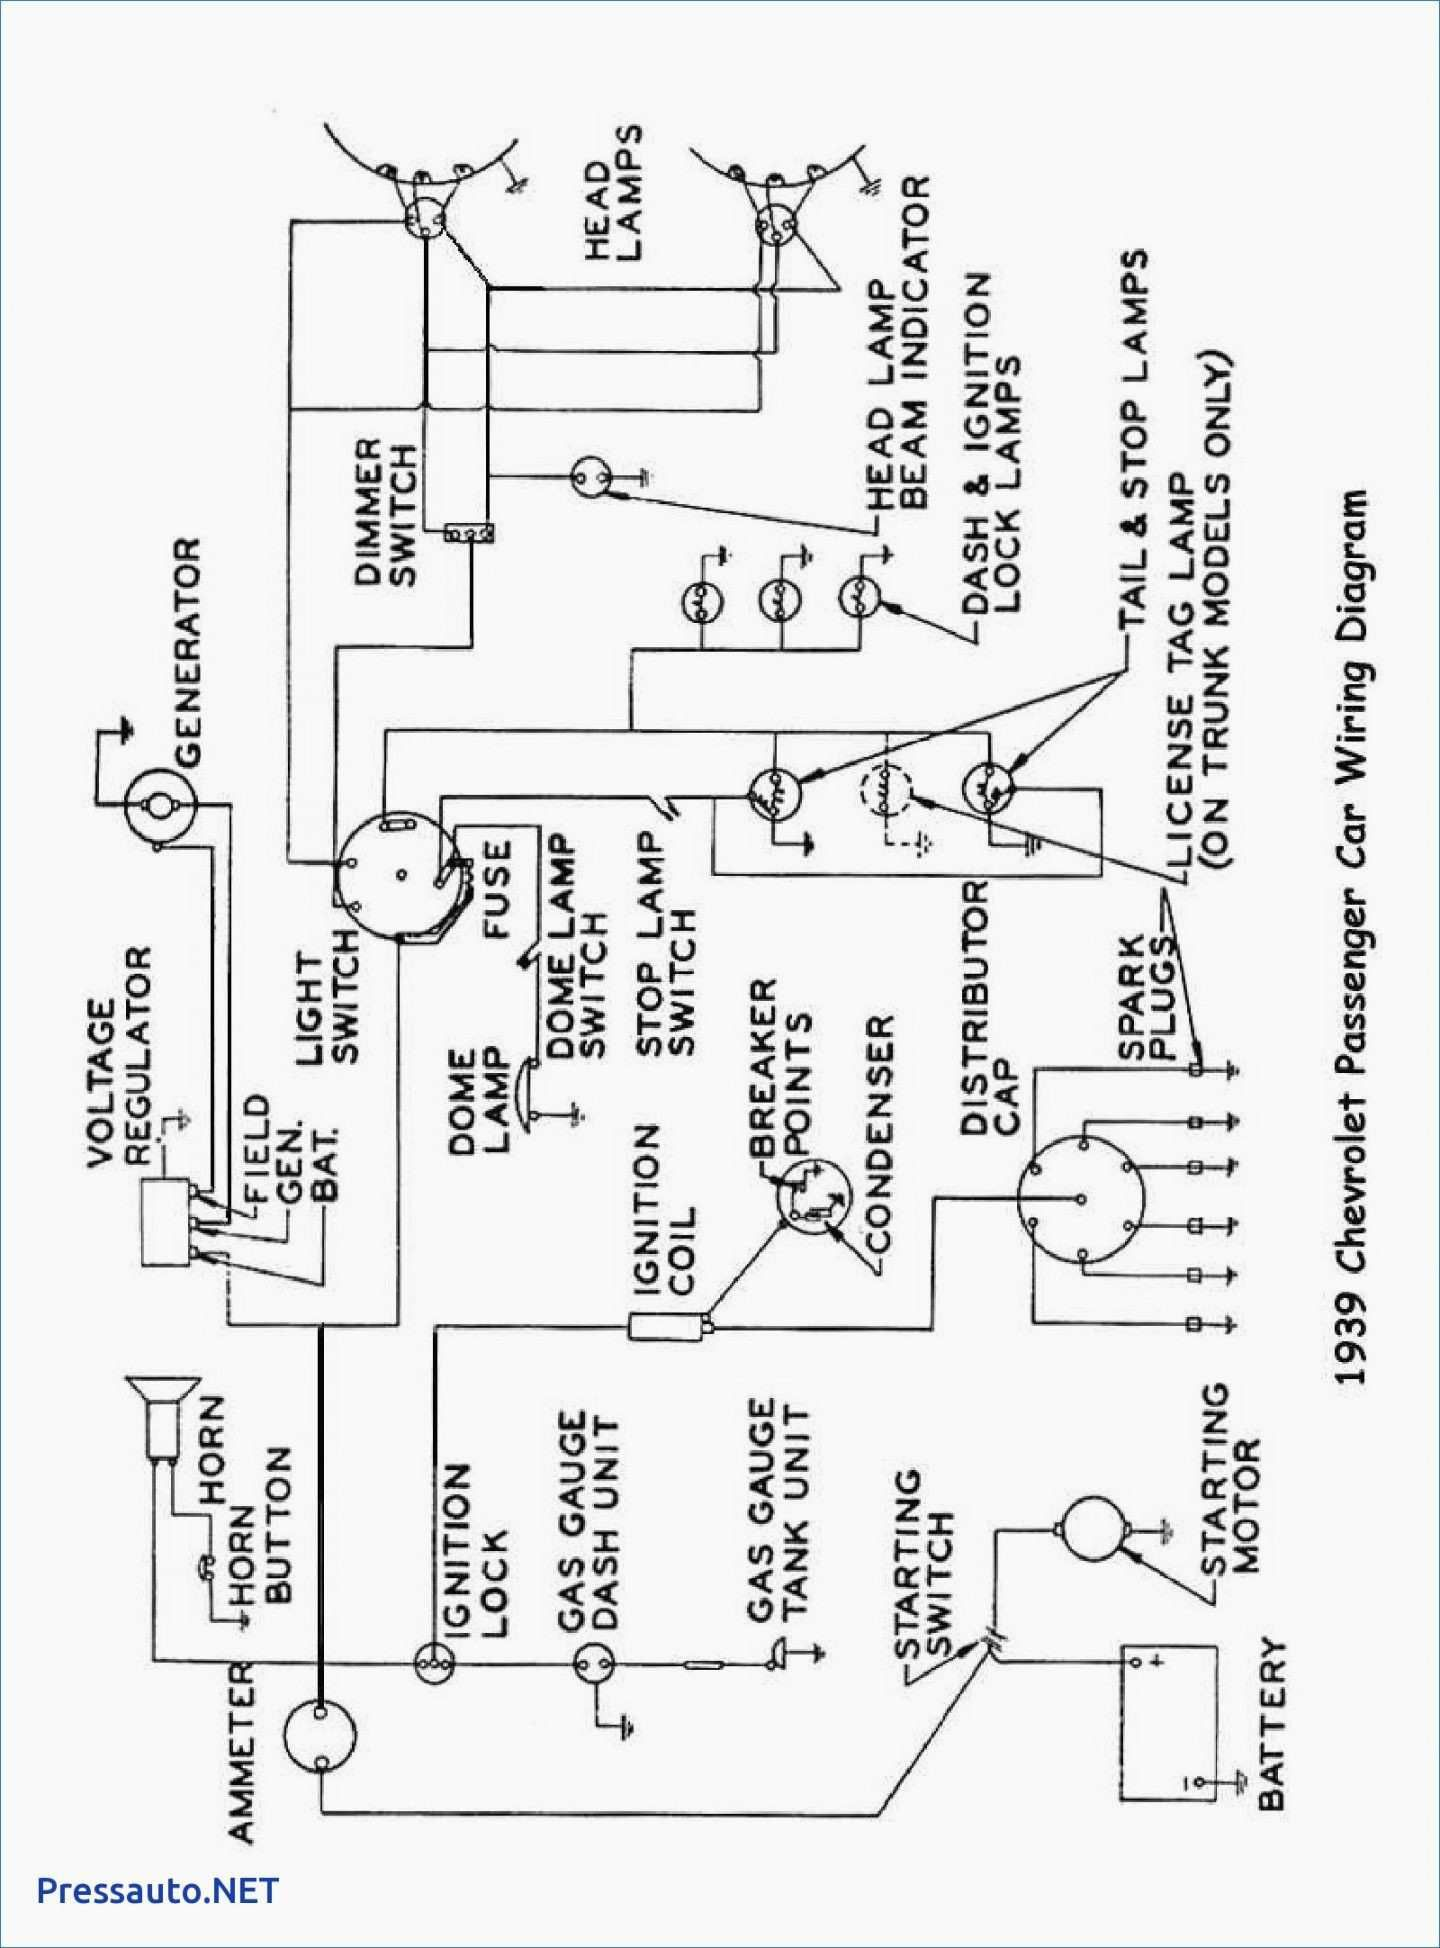 11 Good Wiring Diagram For 3 Way Switch With Multiple Lights Ideas Electrical Wiring Diagram Remote Car Starter Diagram